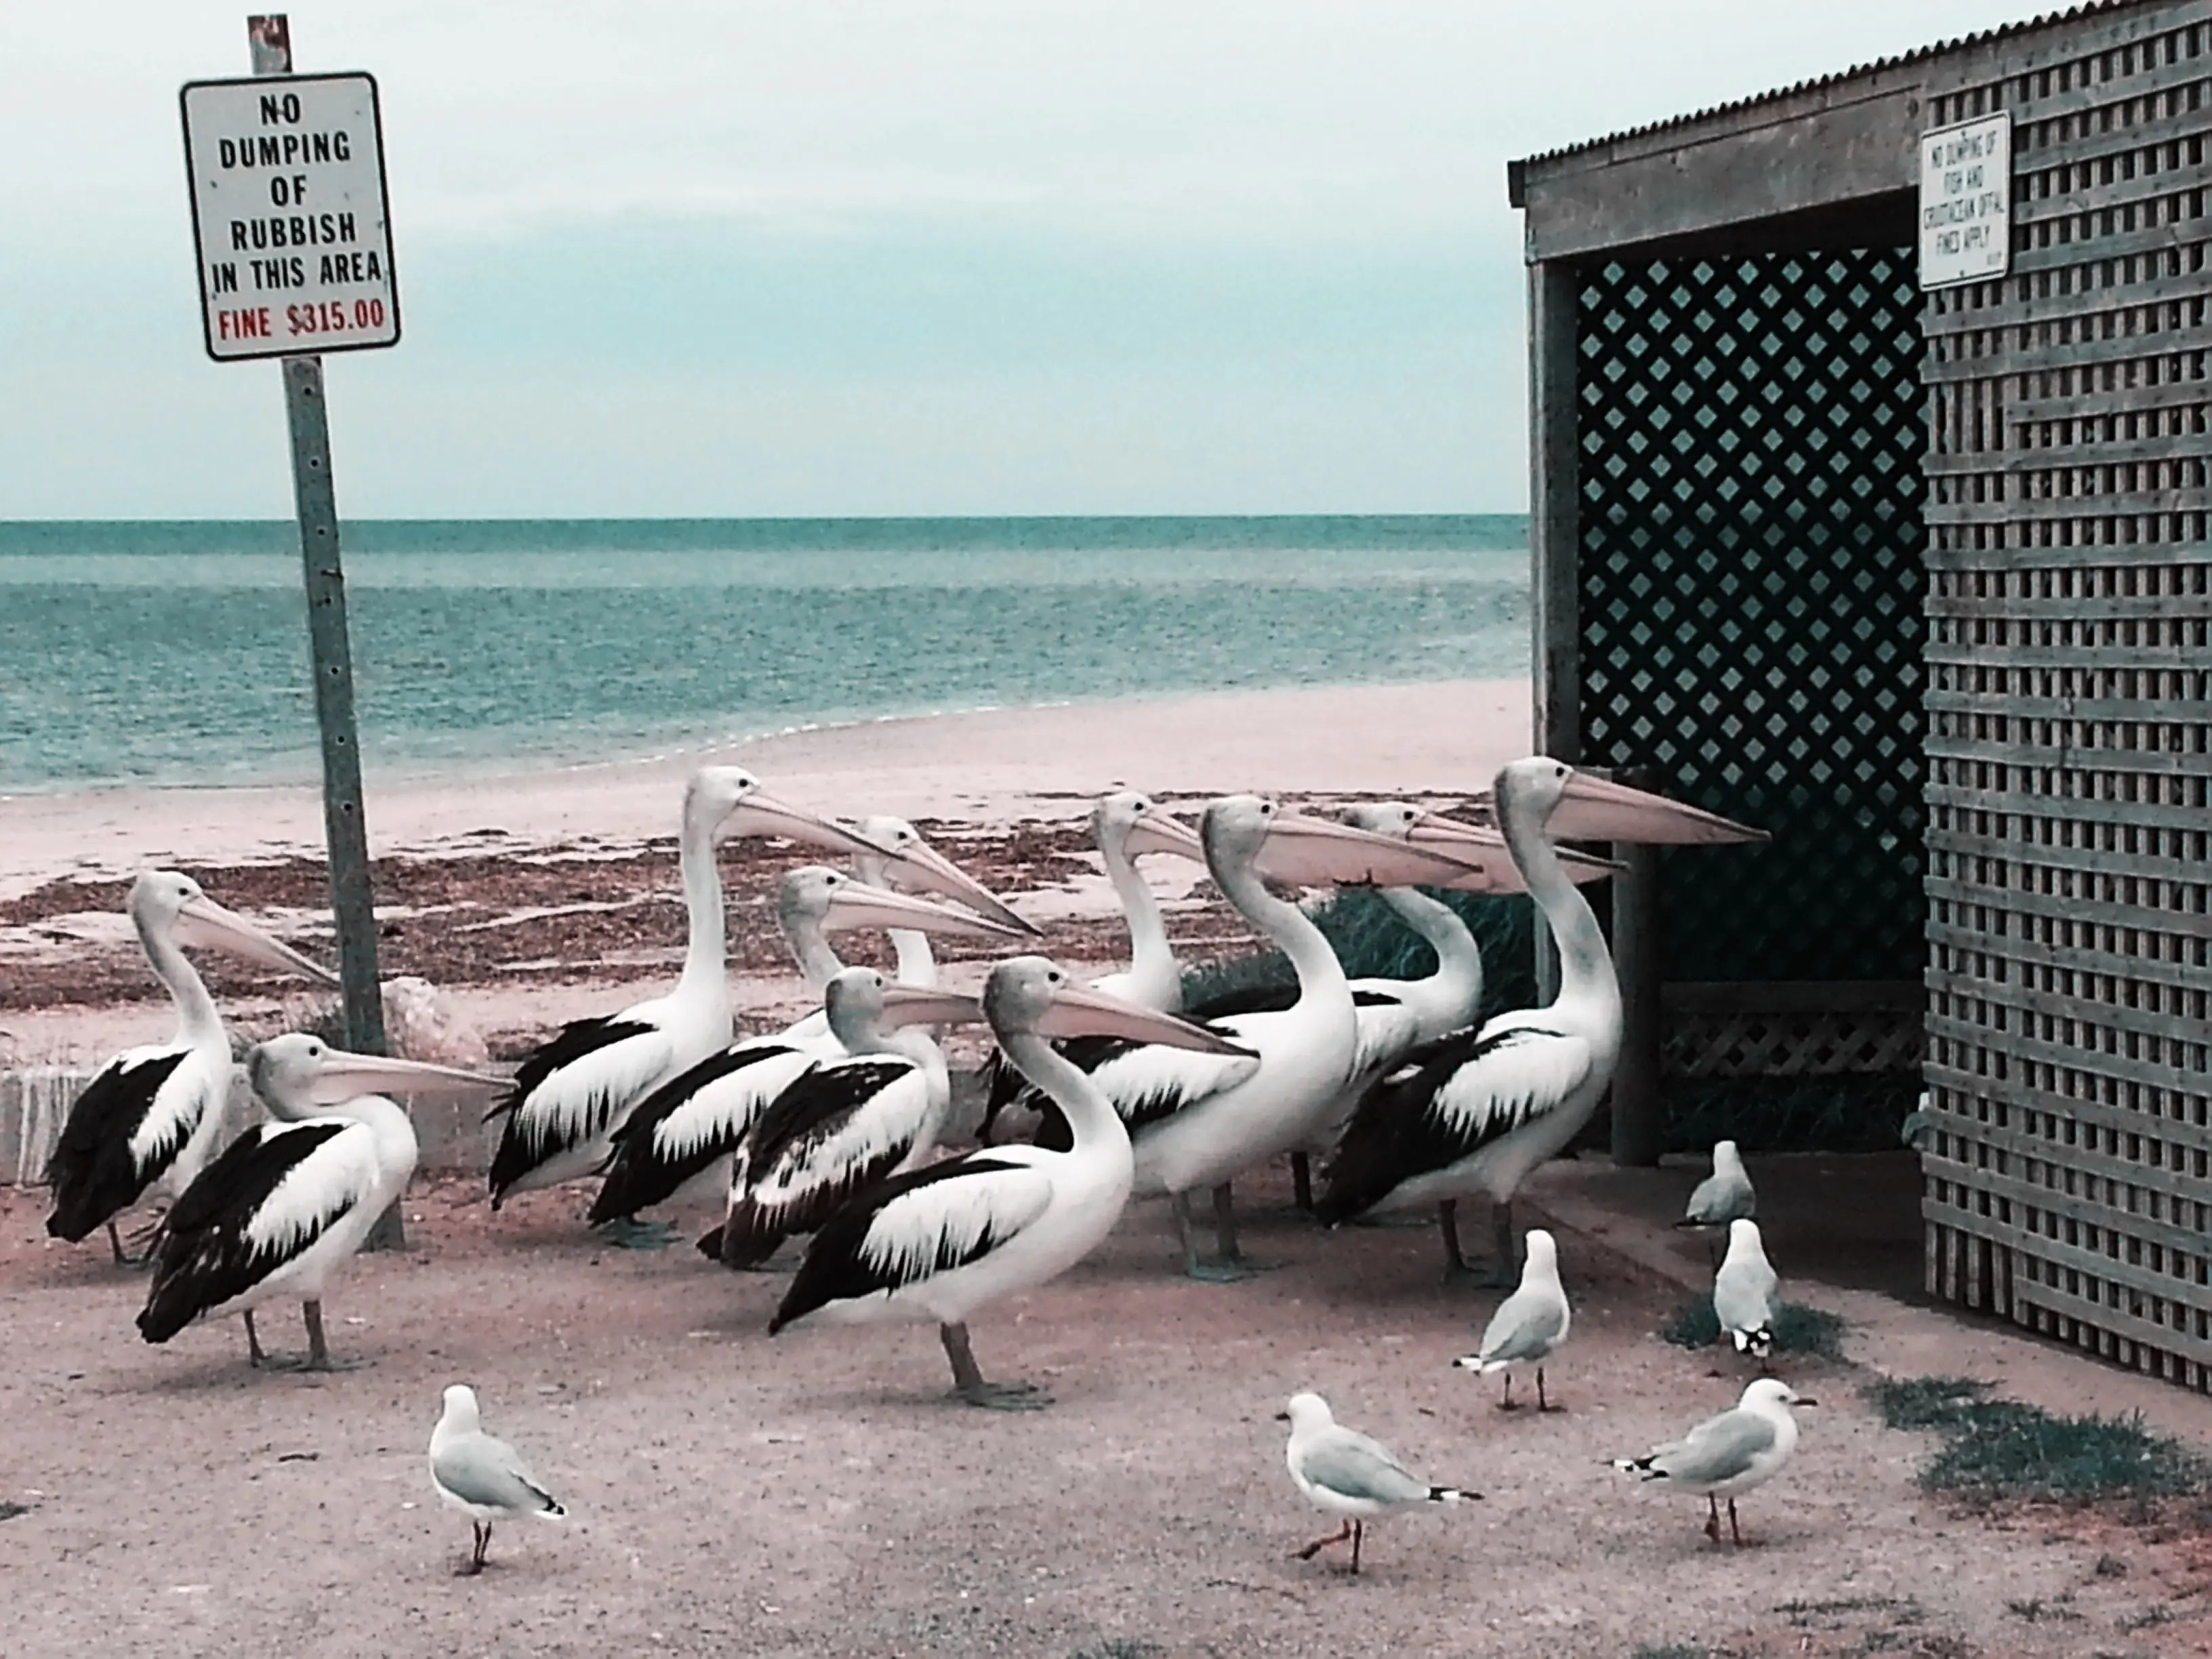 These pelicans live at Port Vincent in South Australia. They have become accustomed to waiting for fish offal for food.